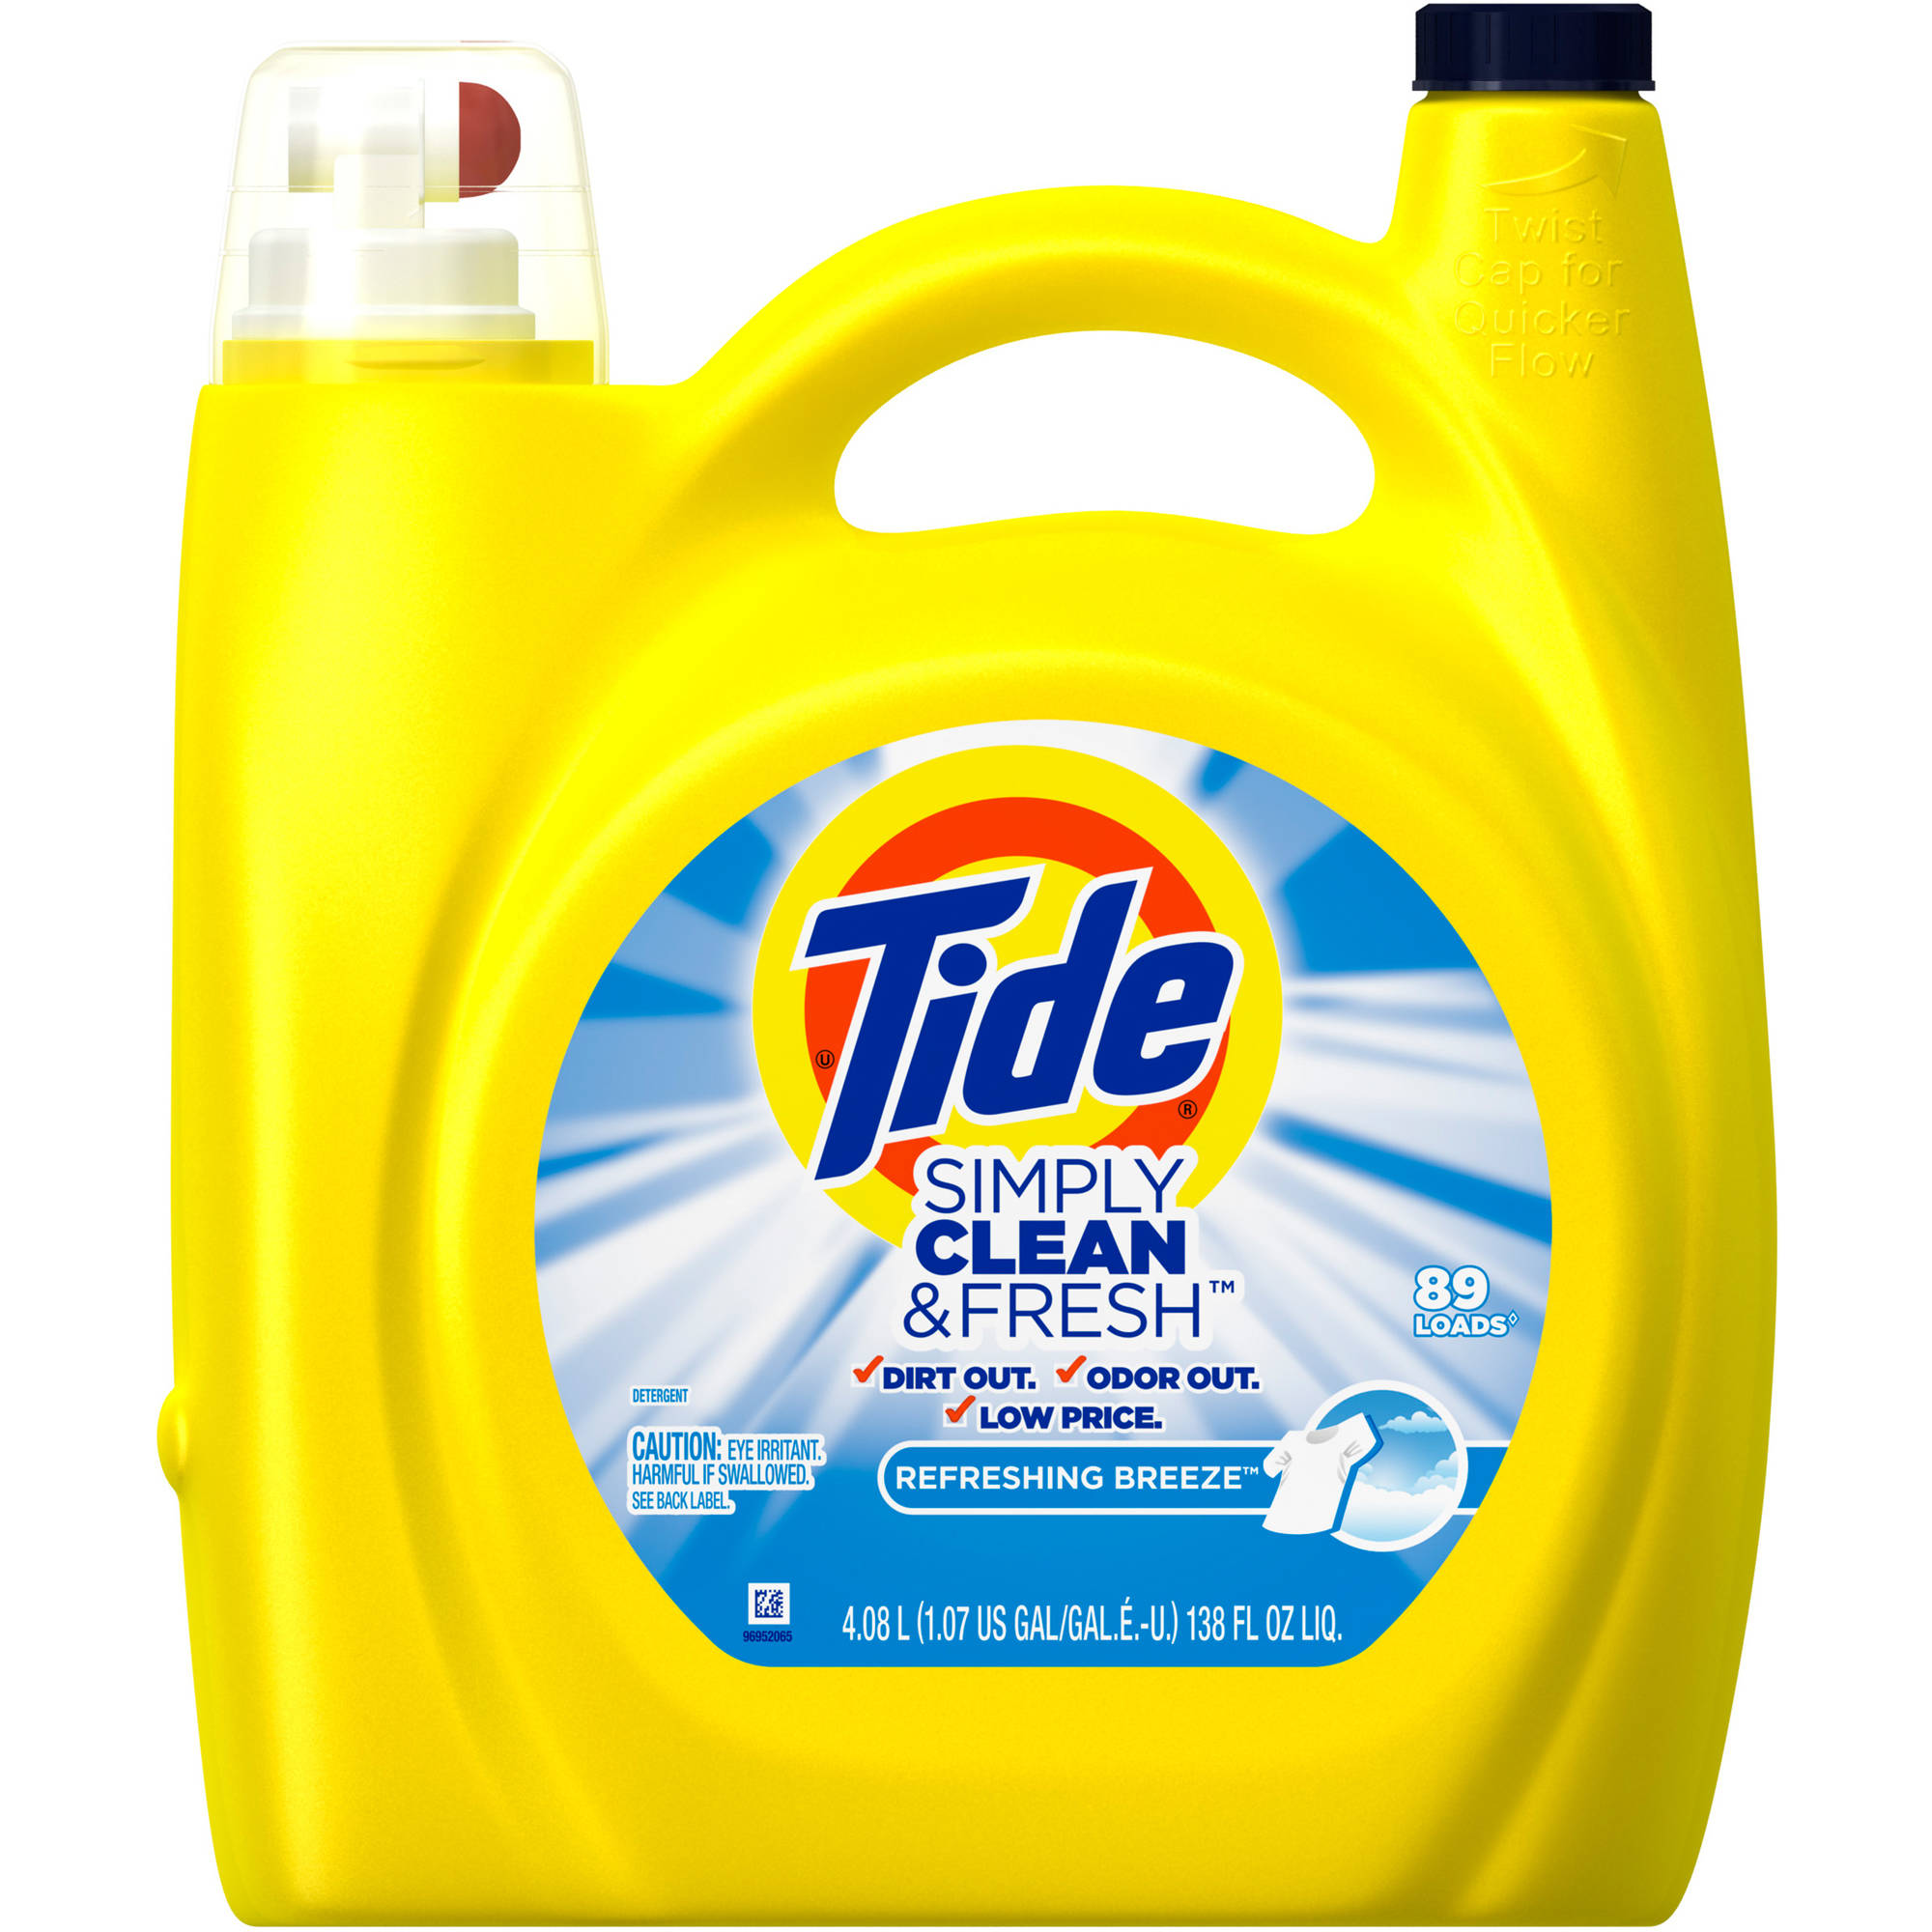 Walmart: Free Tide laundry detergent after rebate!